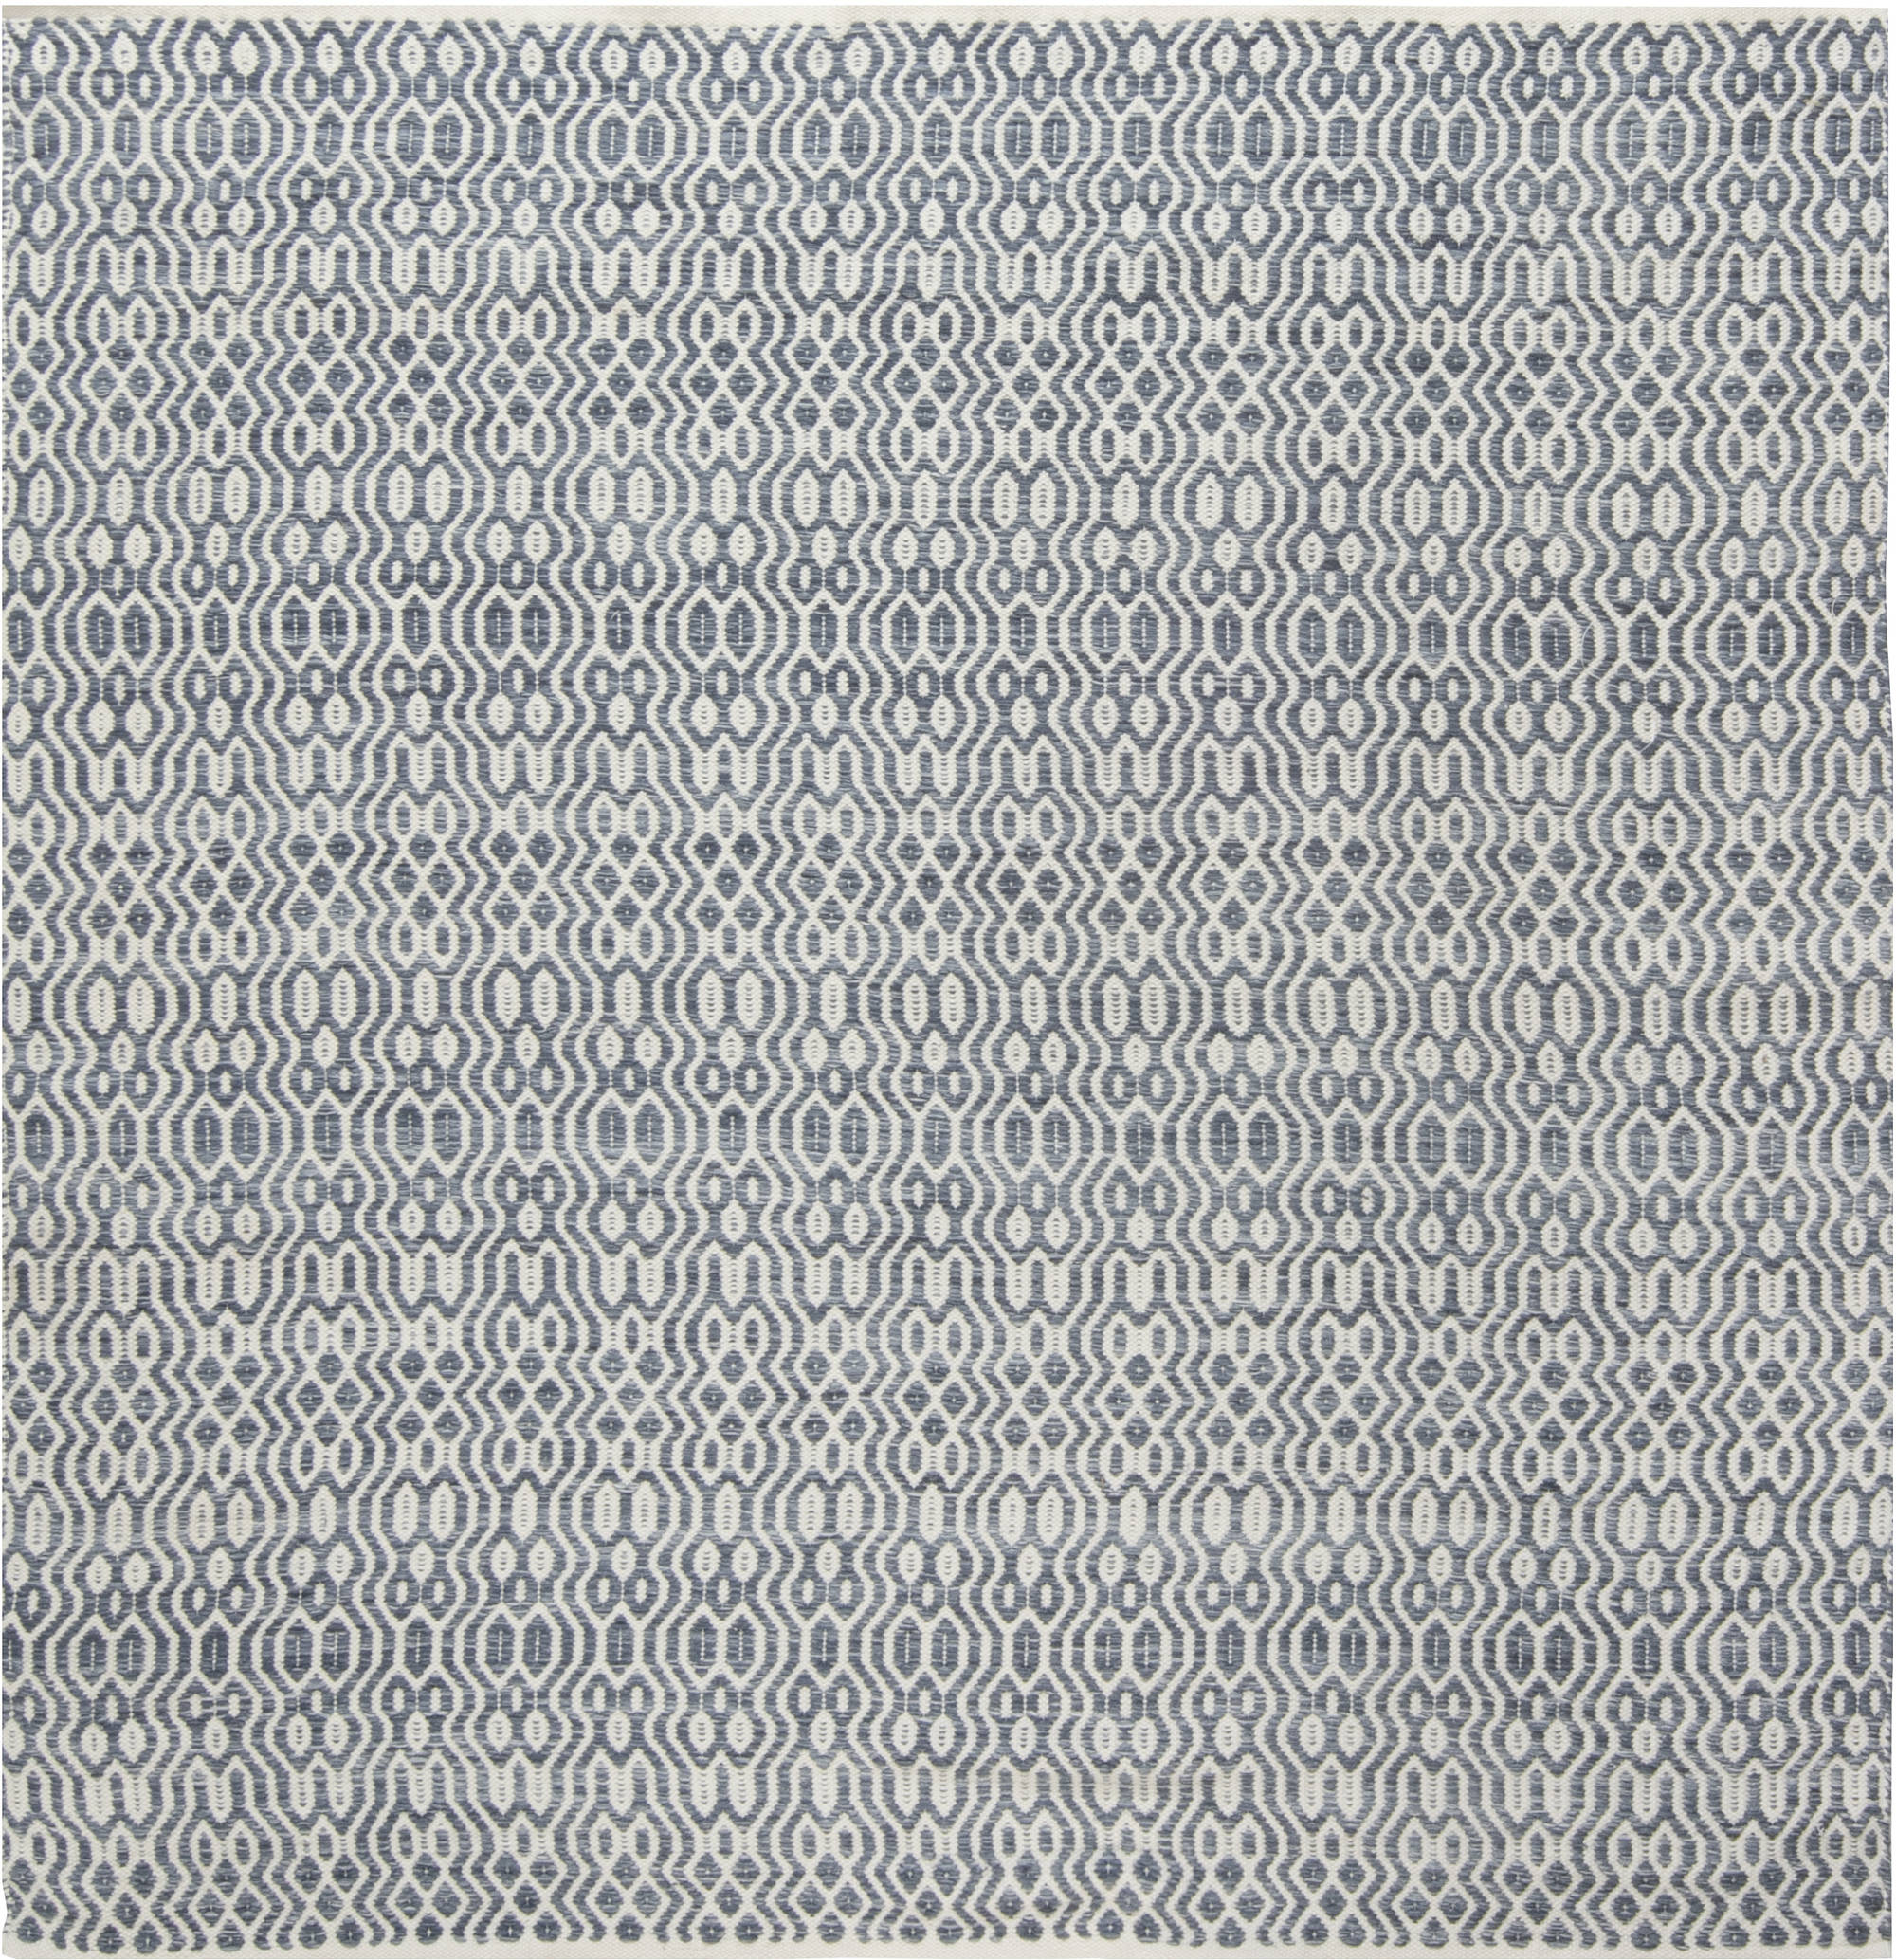 CONTEMPORARY FLAT WEAVE RUG N11863